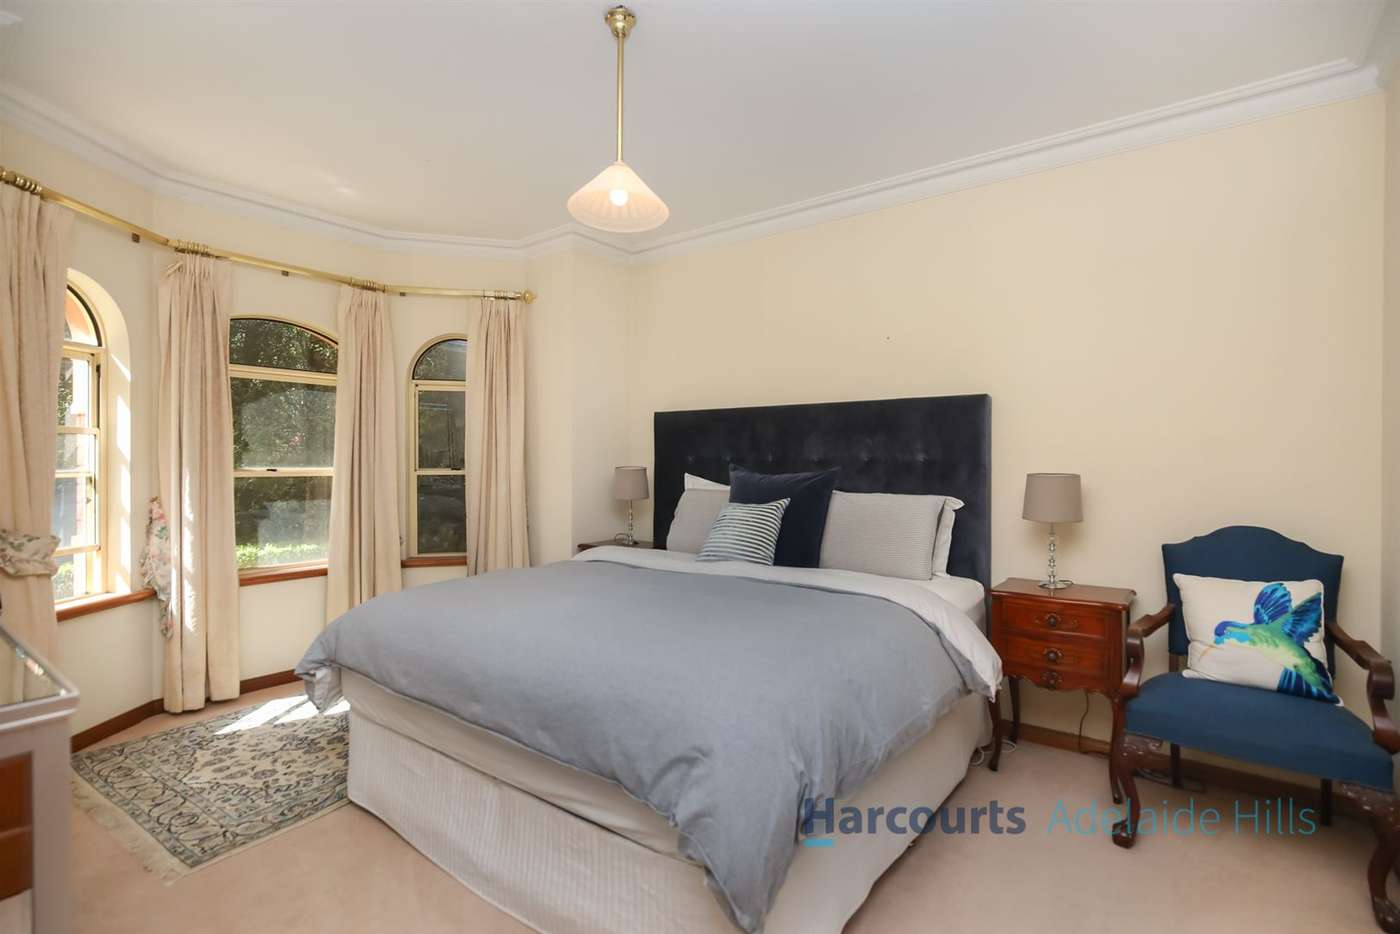 Fifth view of Homely house listing, 32 Hillside Road, Aldgate SA 5154